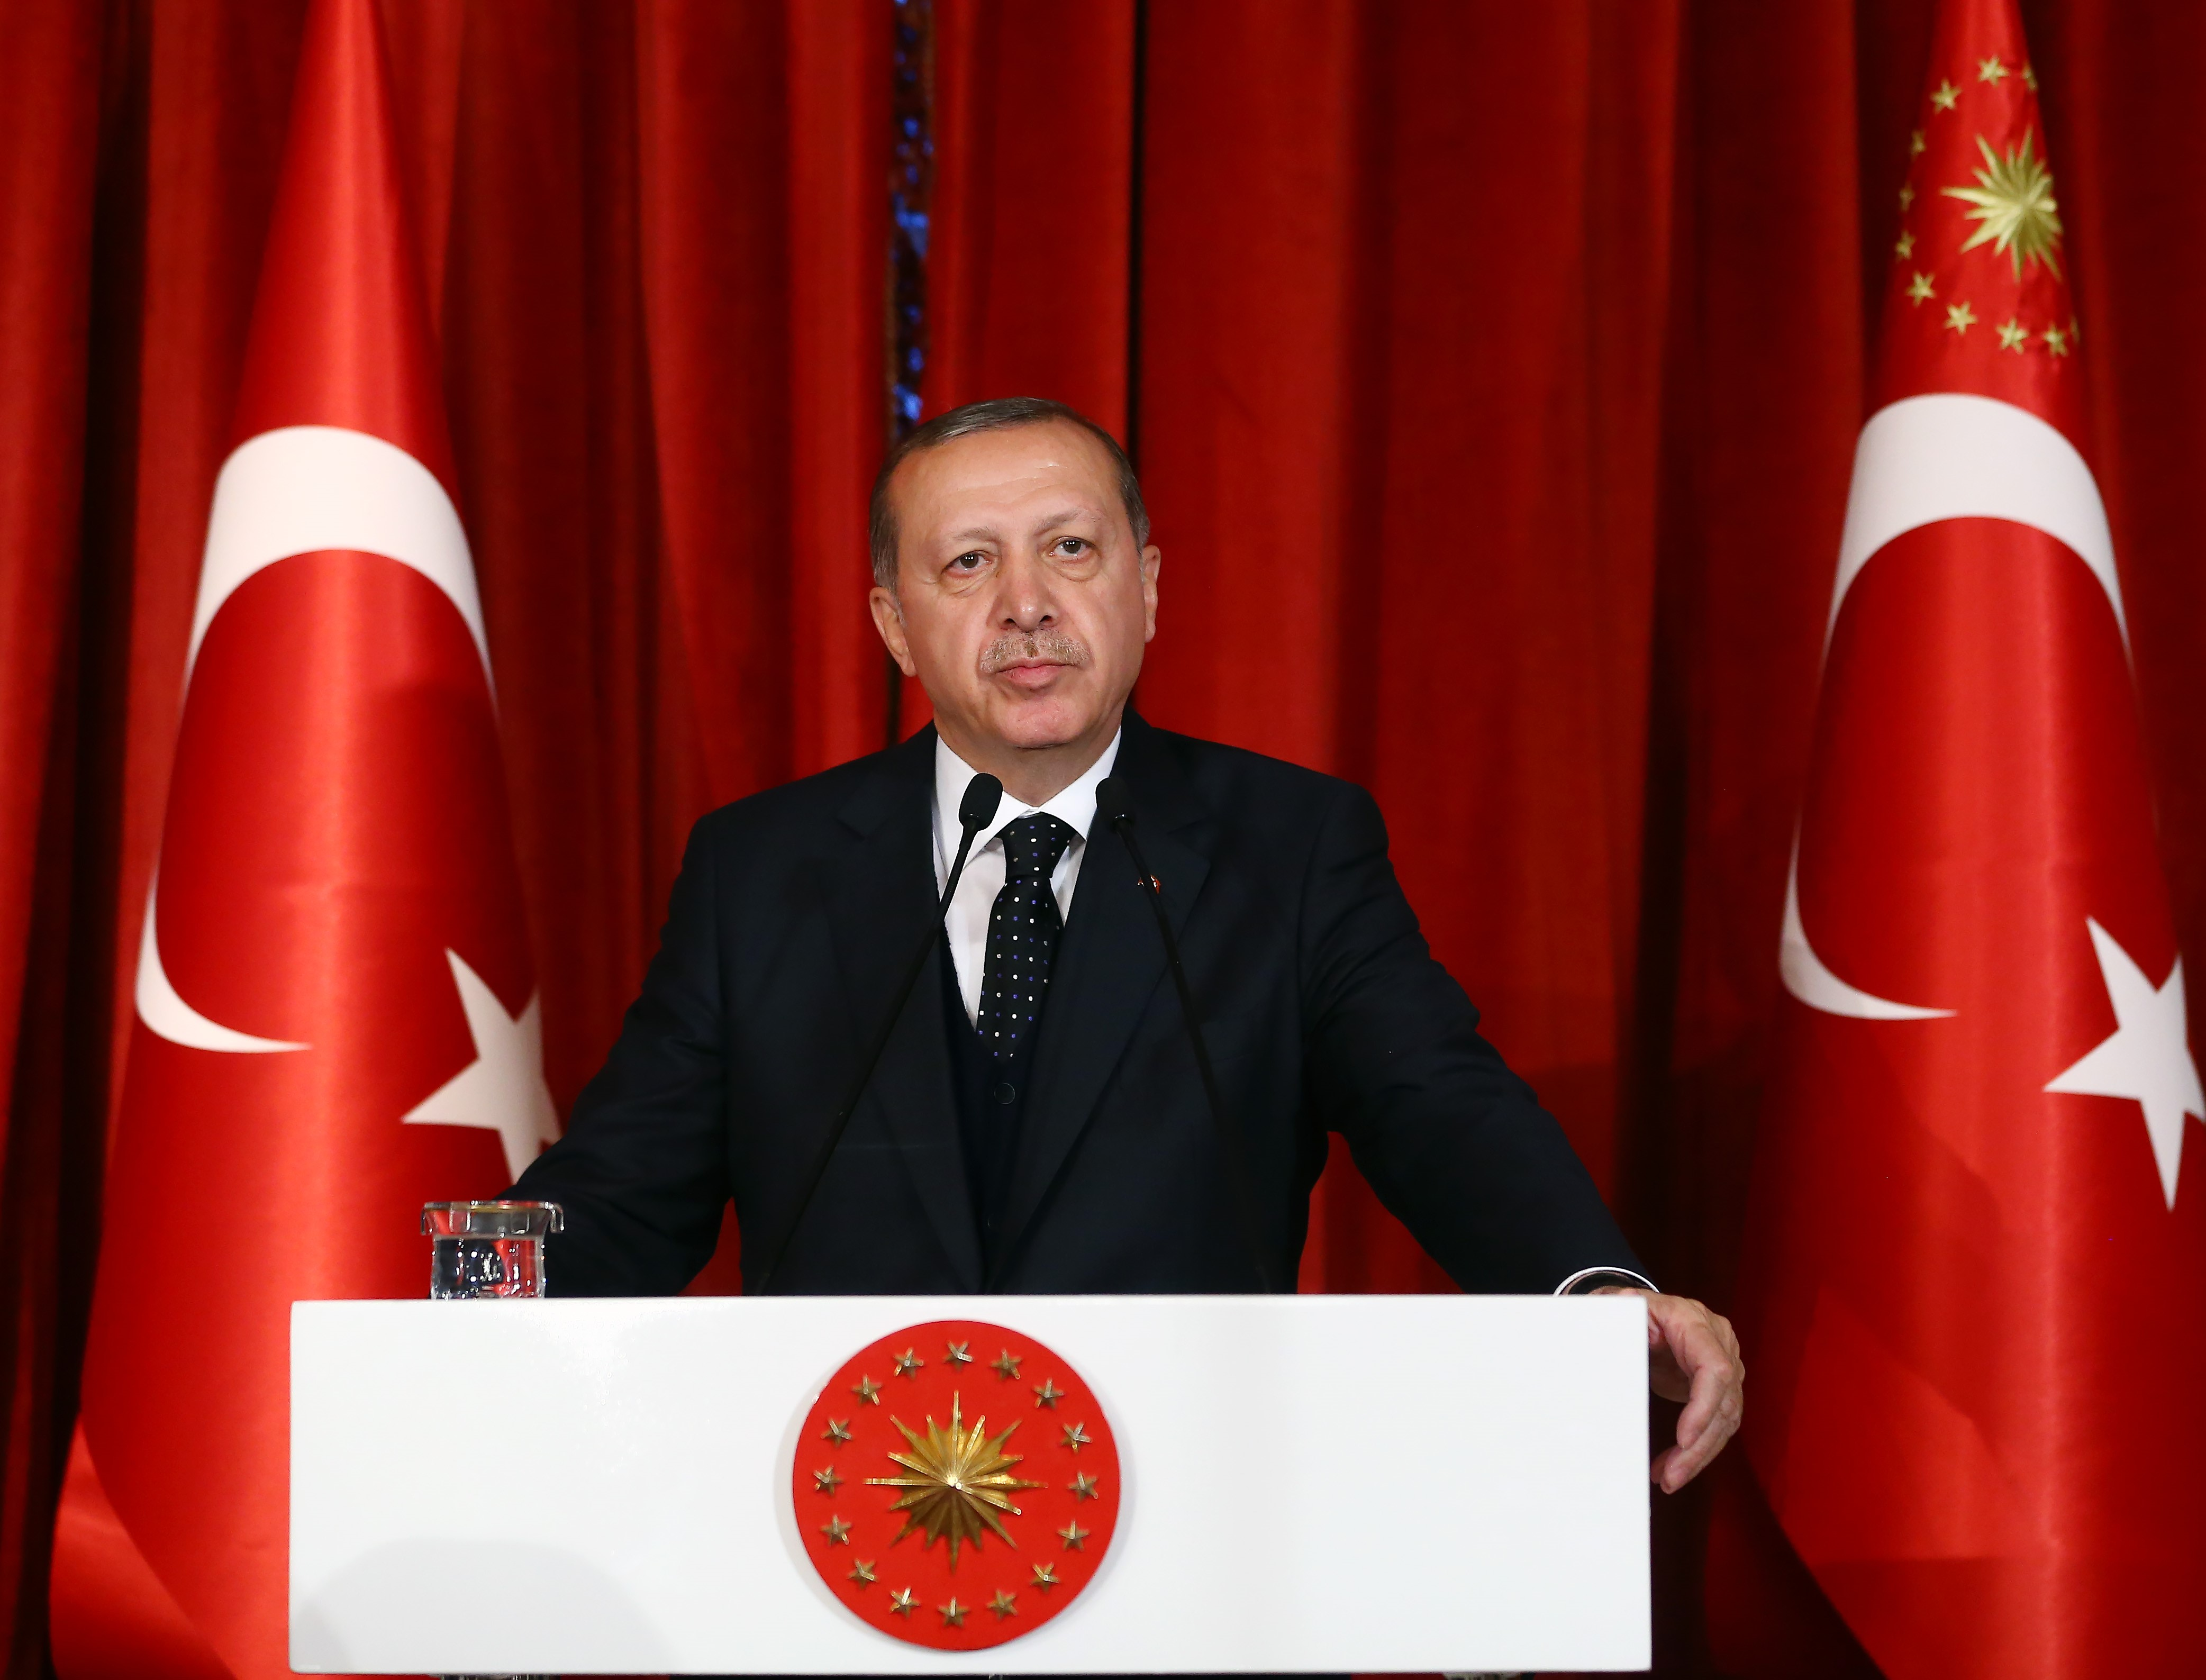 Turkish President Recep Tayyip Erdogan speaks during a gala dinner marking the 55th Foundation Anniversary of Constitutional Court at Historic Beykoz Pavilion in Istanbul, Turkey on April 27, 2017.